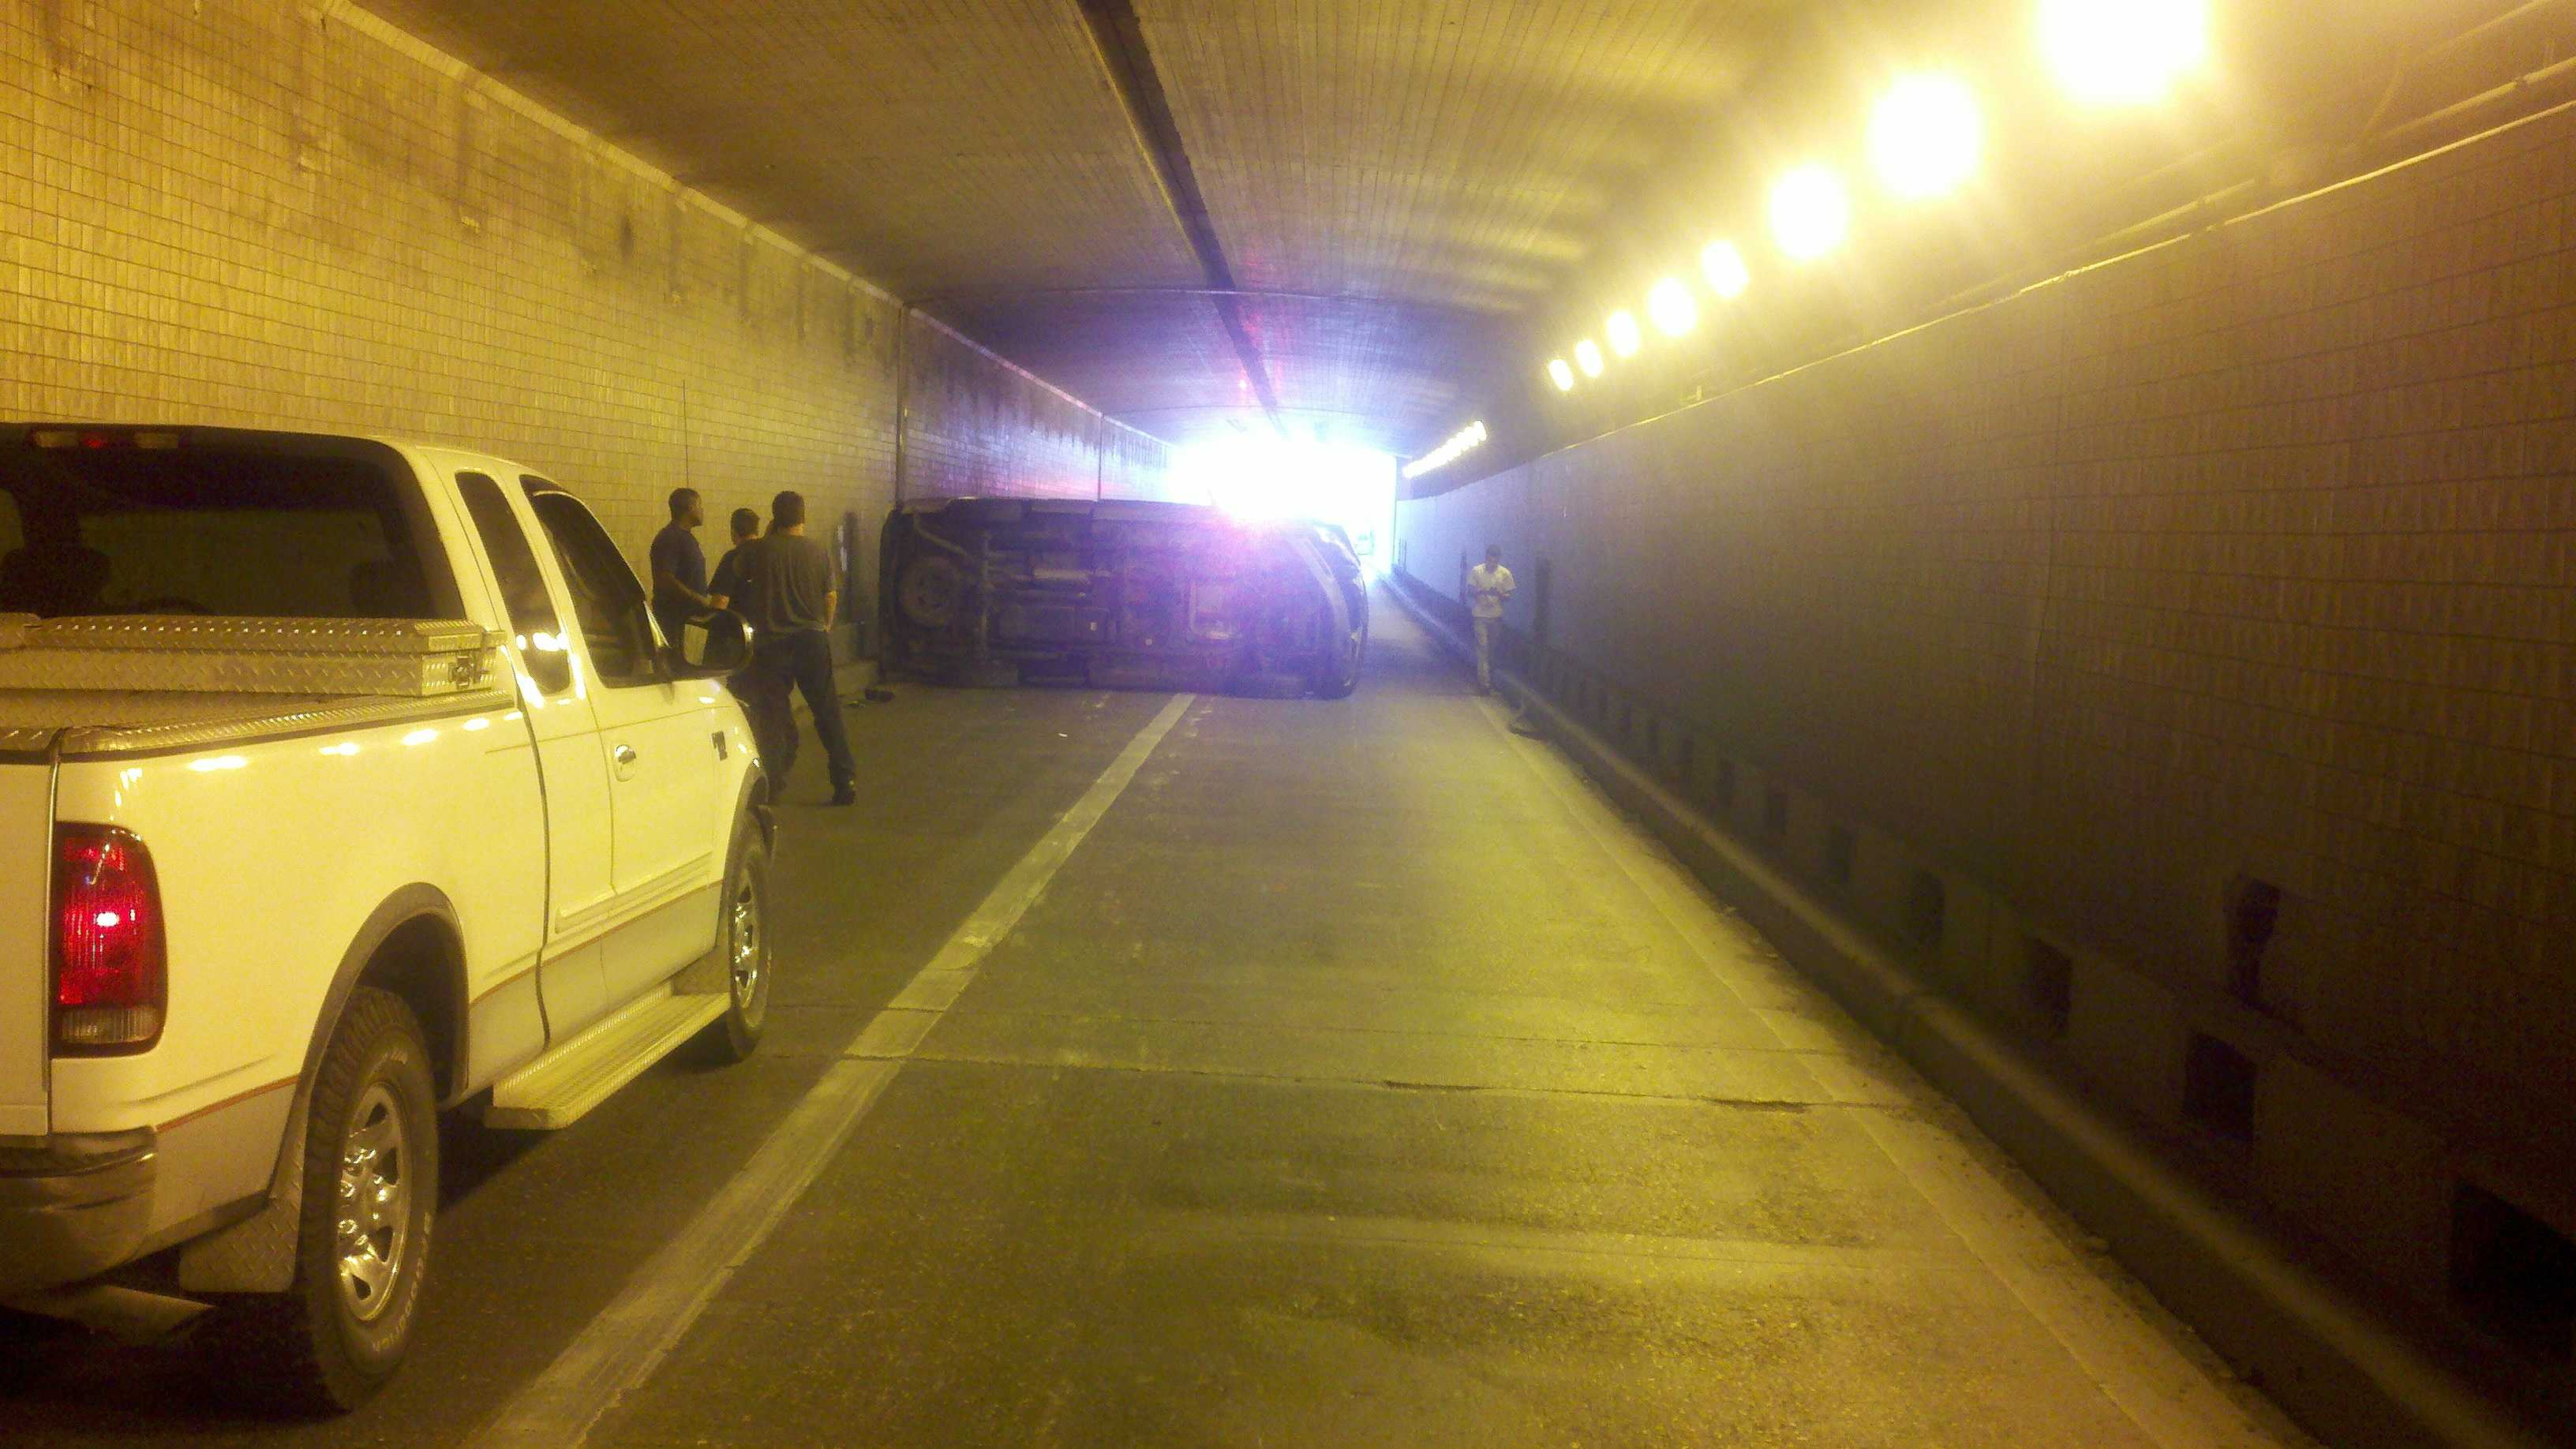 A vehicle overturns in the Belle Chasse Tunnel shutting down traffic moving southbound on Highway 23.